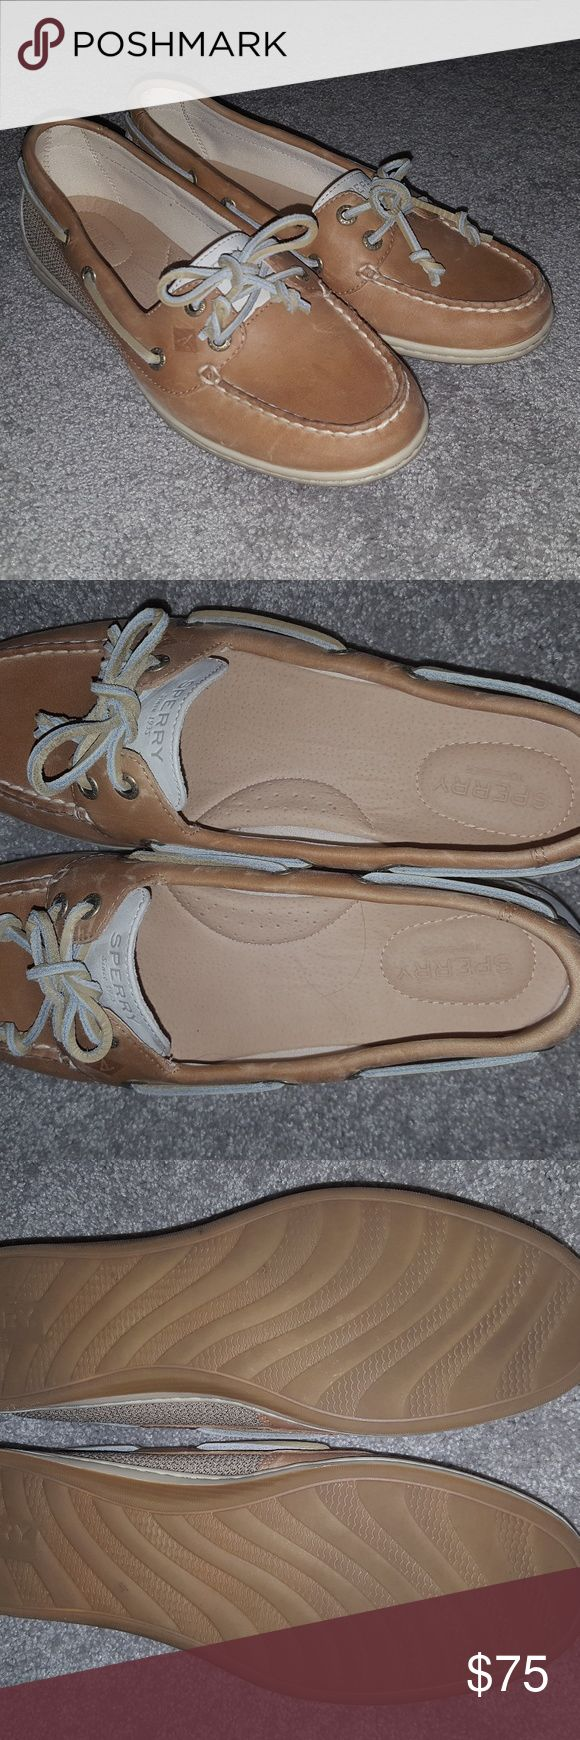 Sperry Women's Angelfish Boat Shoes NEVER WORN, BRAND NEW, SIZE 8.5 Email me if interested! Flowergirlz116@aol.com Sperry Shoes Flats & Loafers